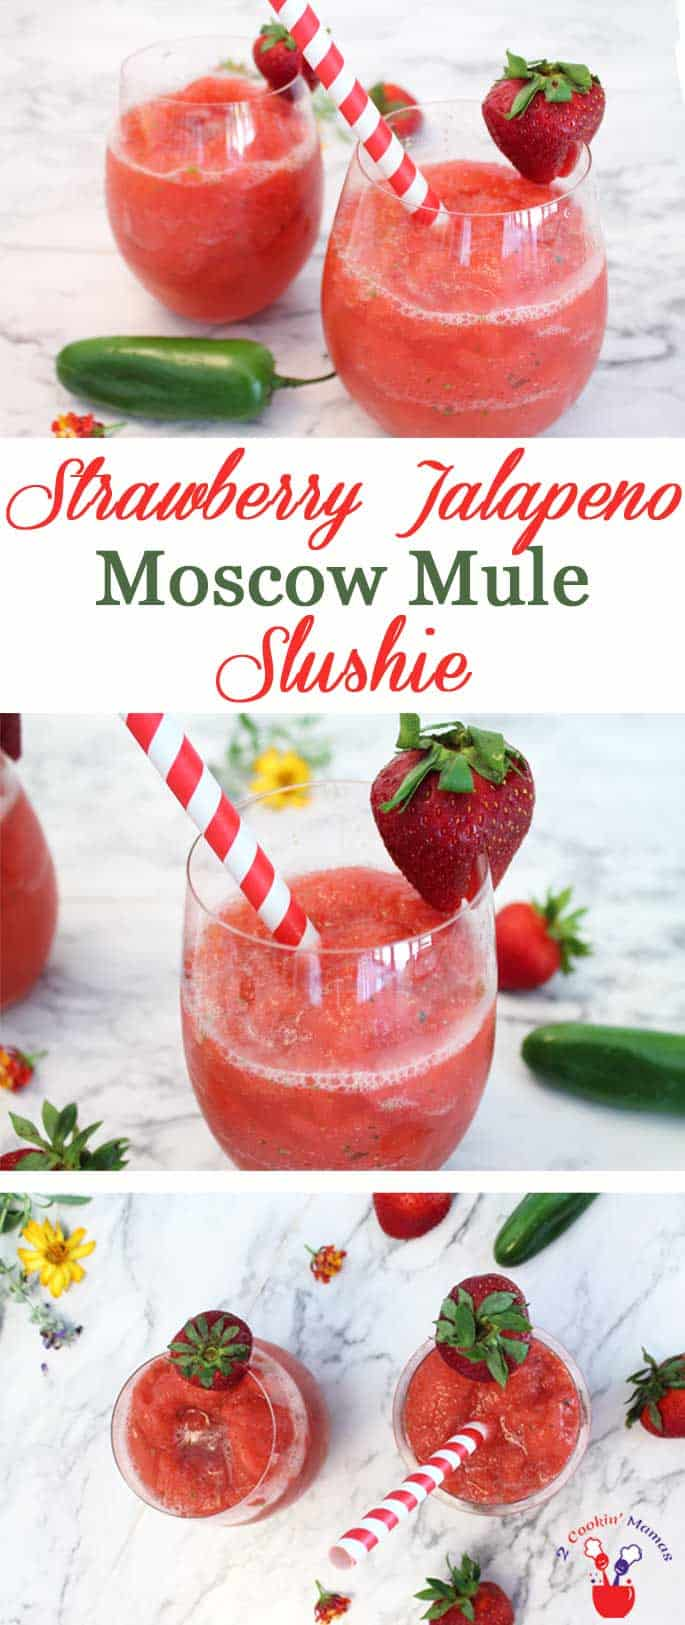 Strawberry Jalapeno Moscow Mule Slushie | 2 Cookin Mamas Ready to add a little cool & spicy to your Moscow Mule? Enter our Strawberry Jalapeno Moscow Mule Slushie, just what the doctor ordered to beat the heat!